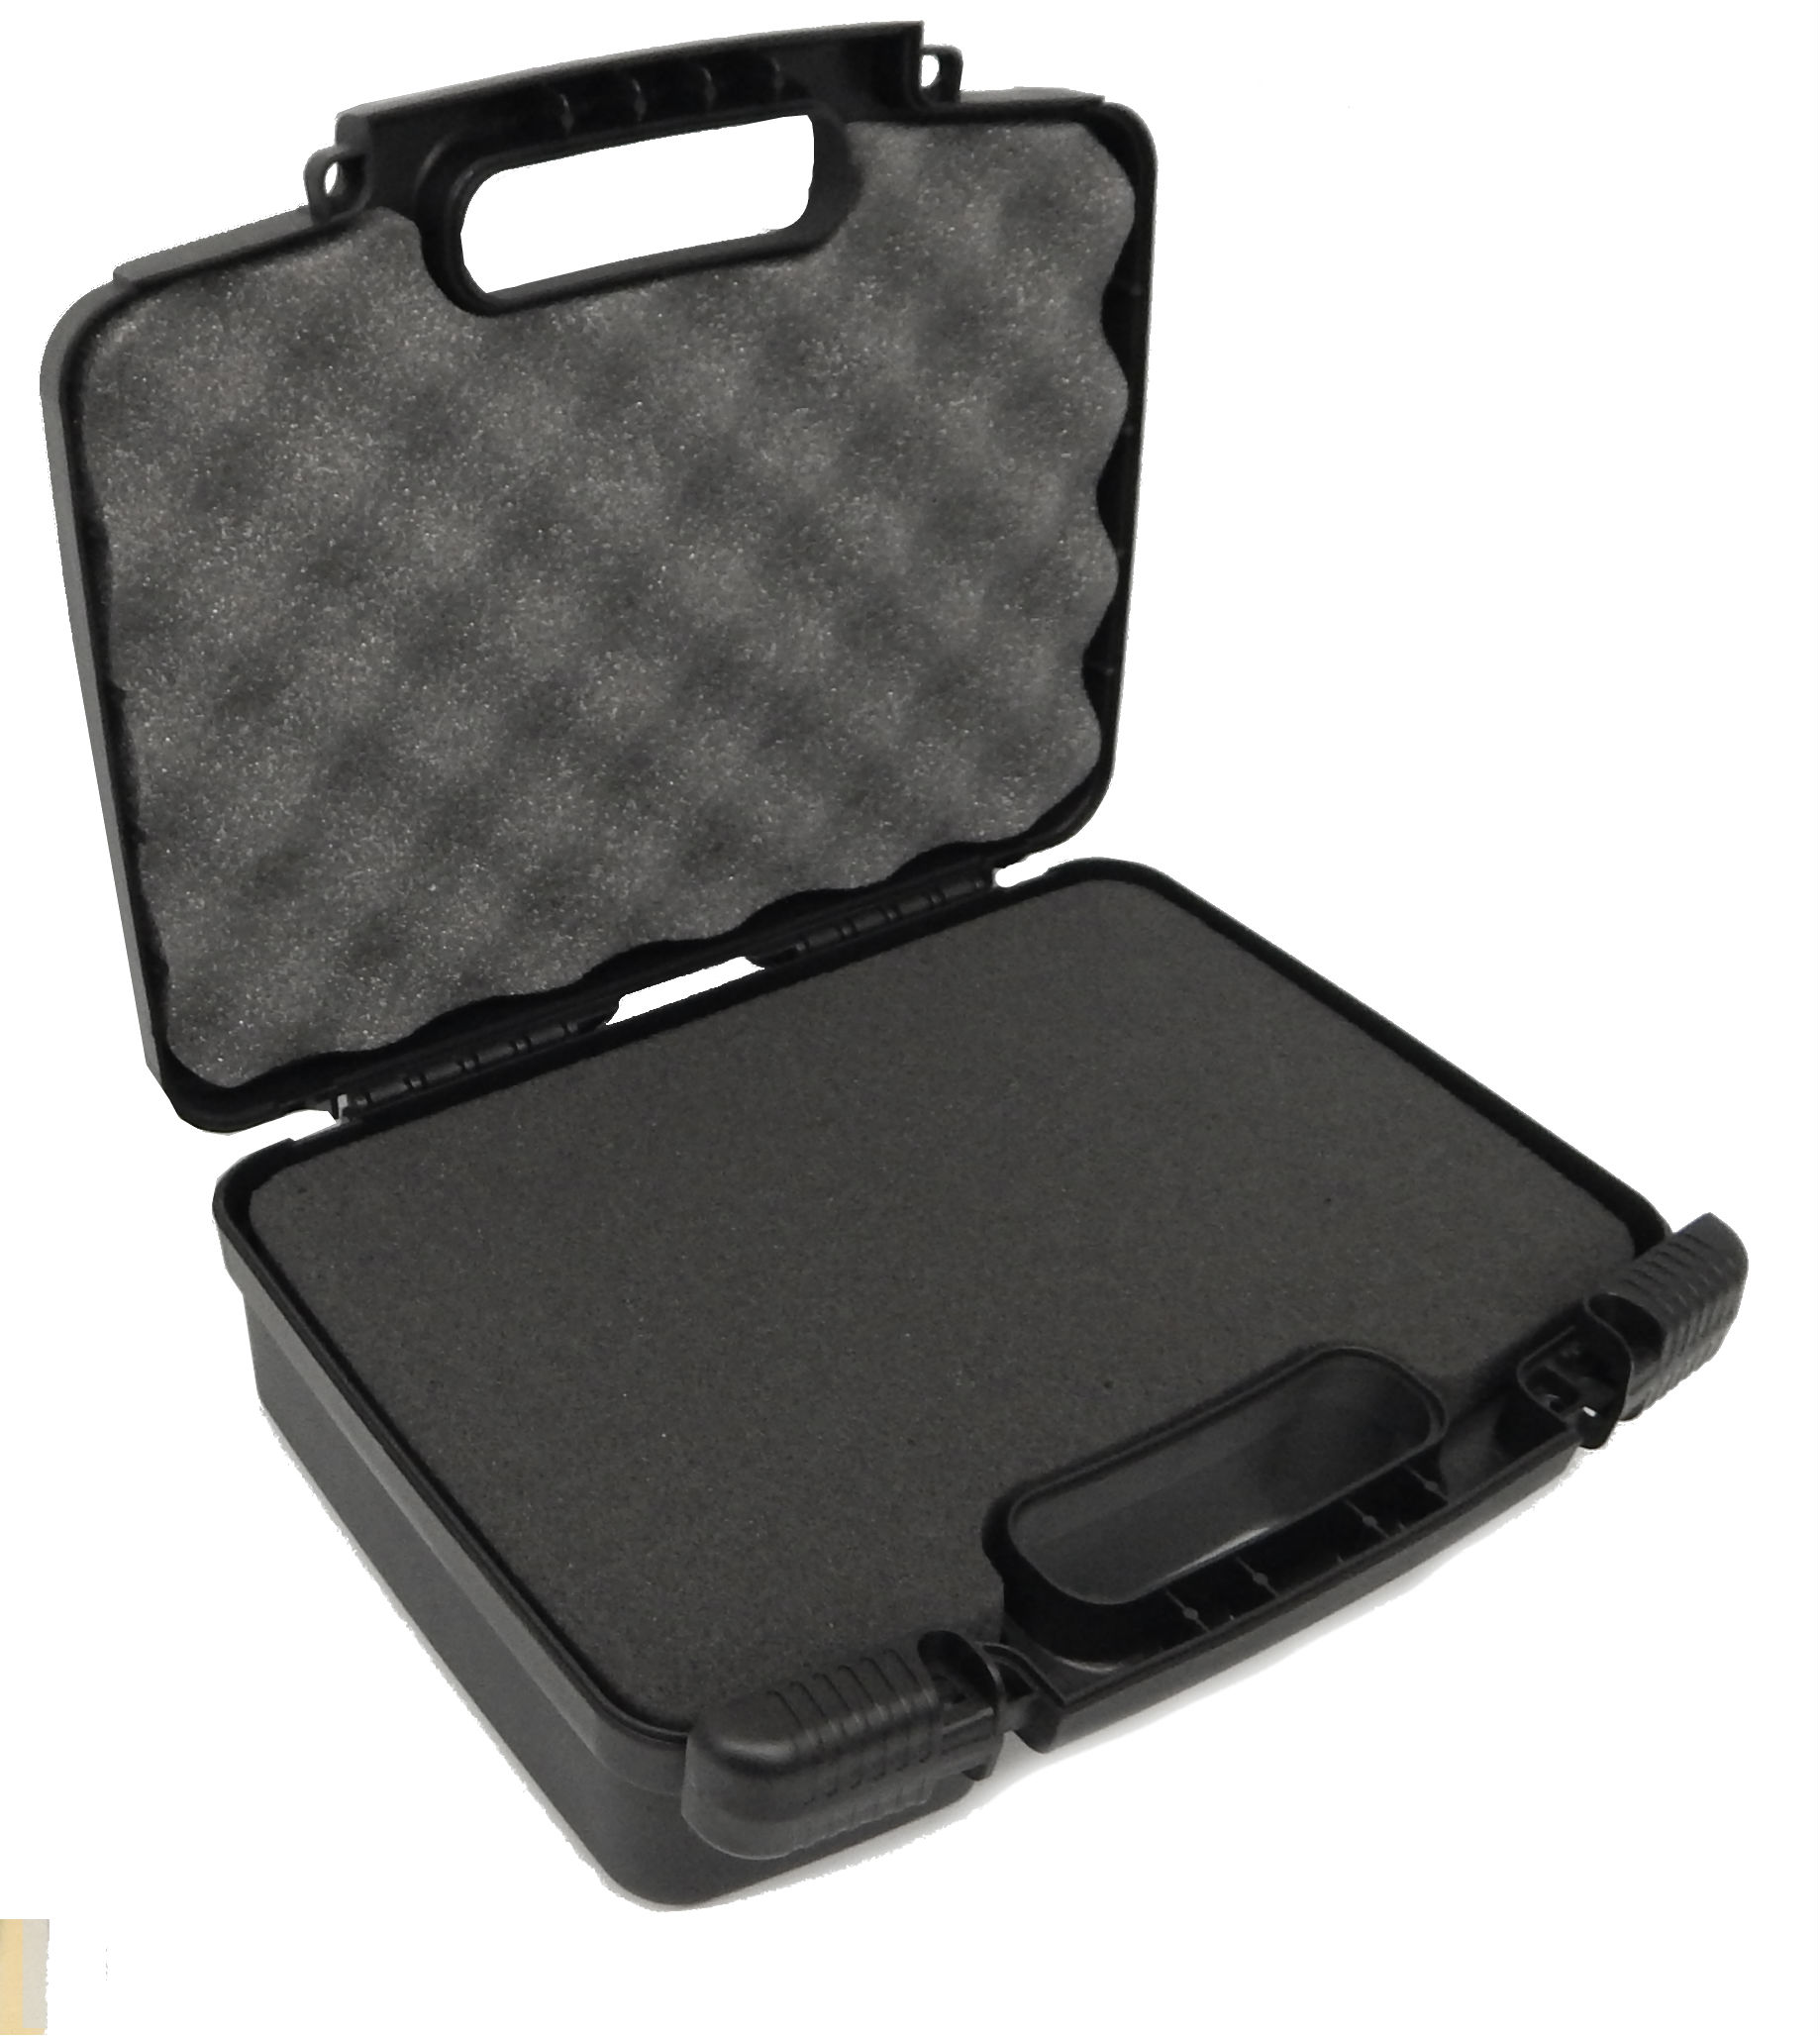 CASEMATIX Protective Camera Travel Case With Customizable Foam - To Carry Livestream Mevo Camera Live Event and Accessories such as Tripod , Mevo Boost , Battery Charger , USB Cable , Mount and More